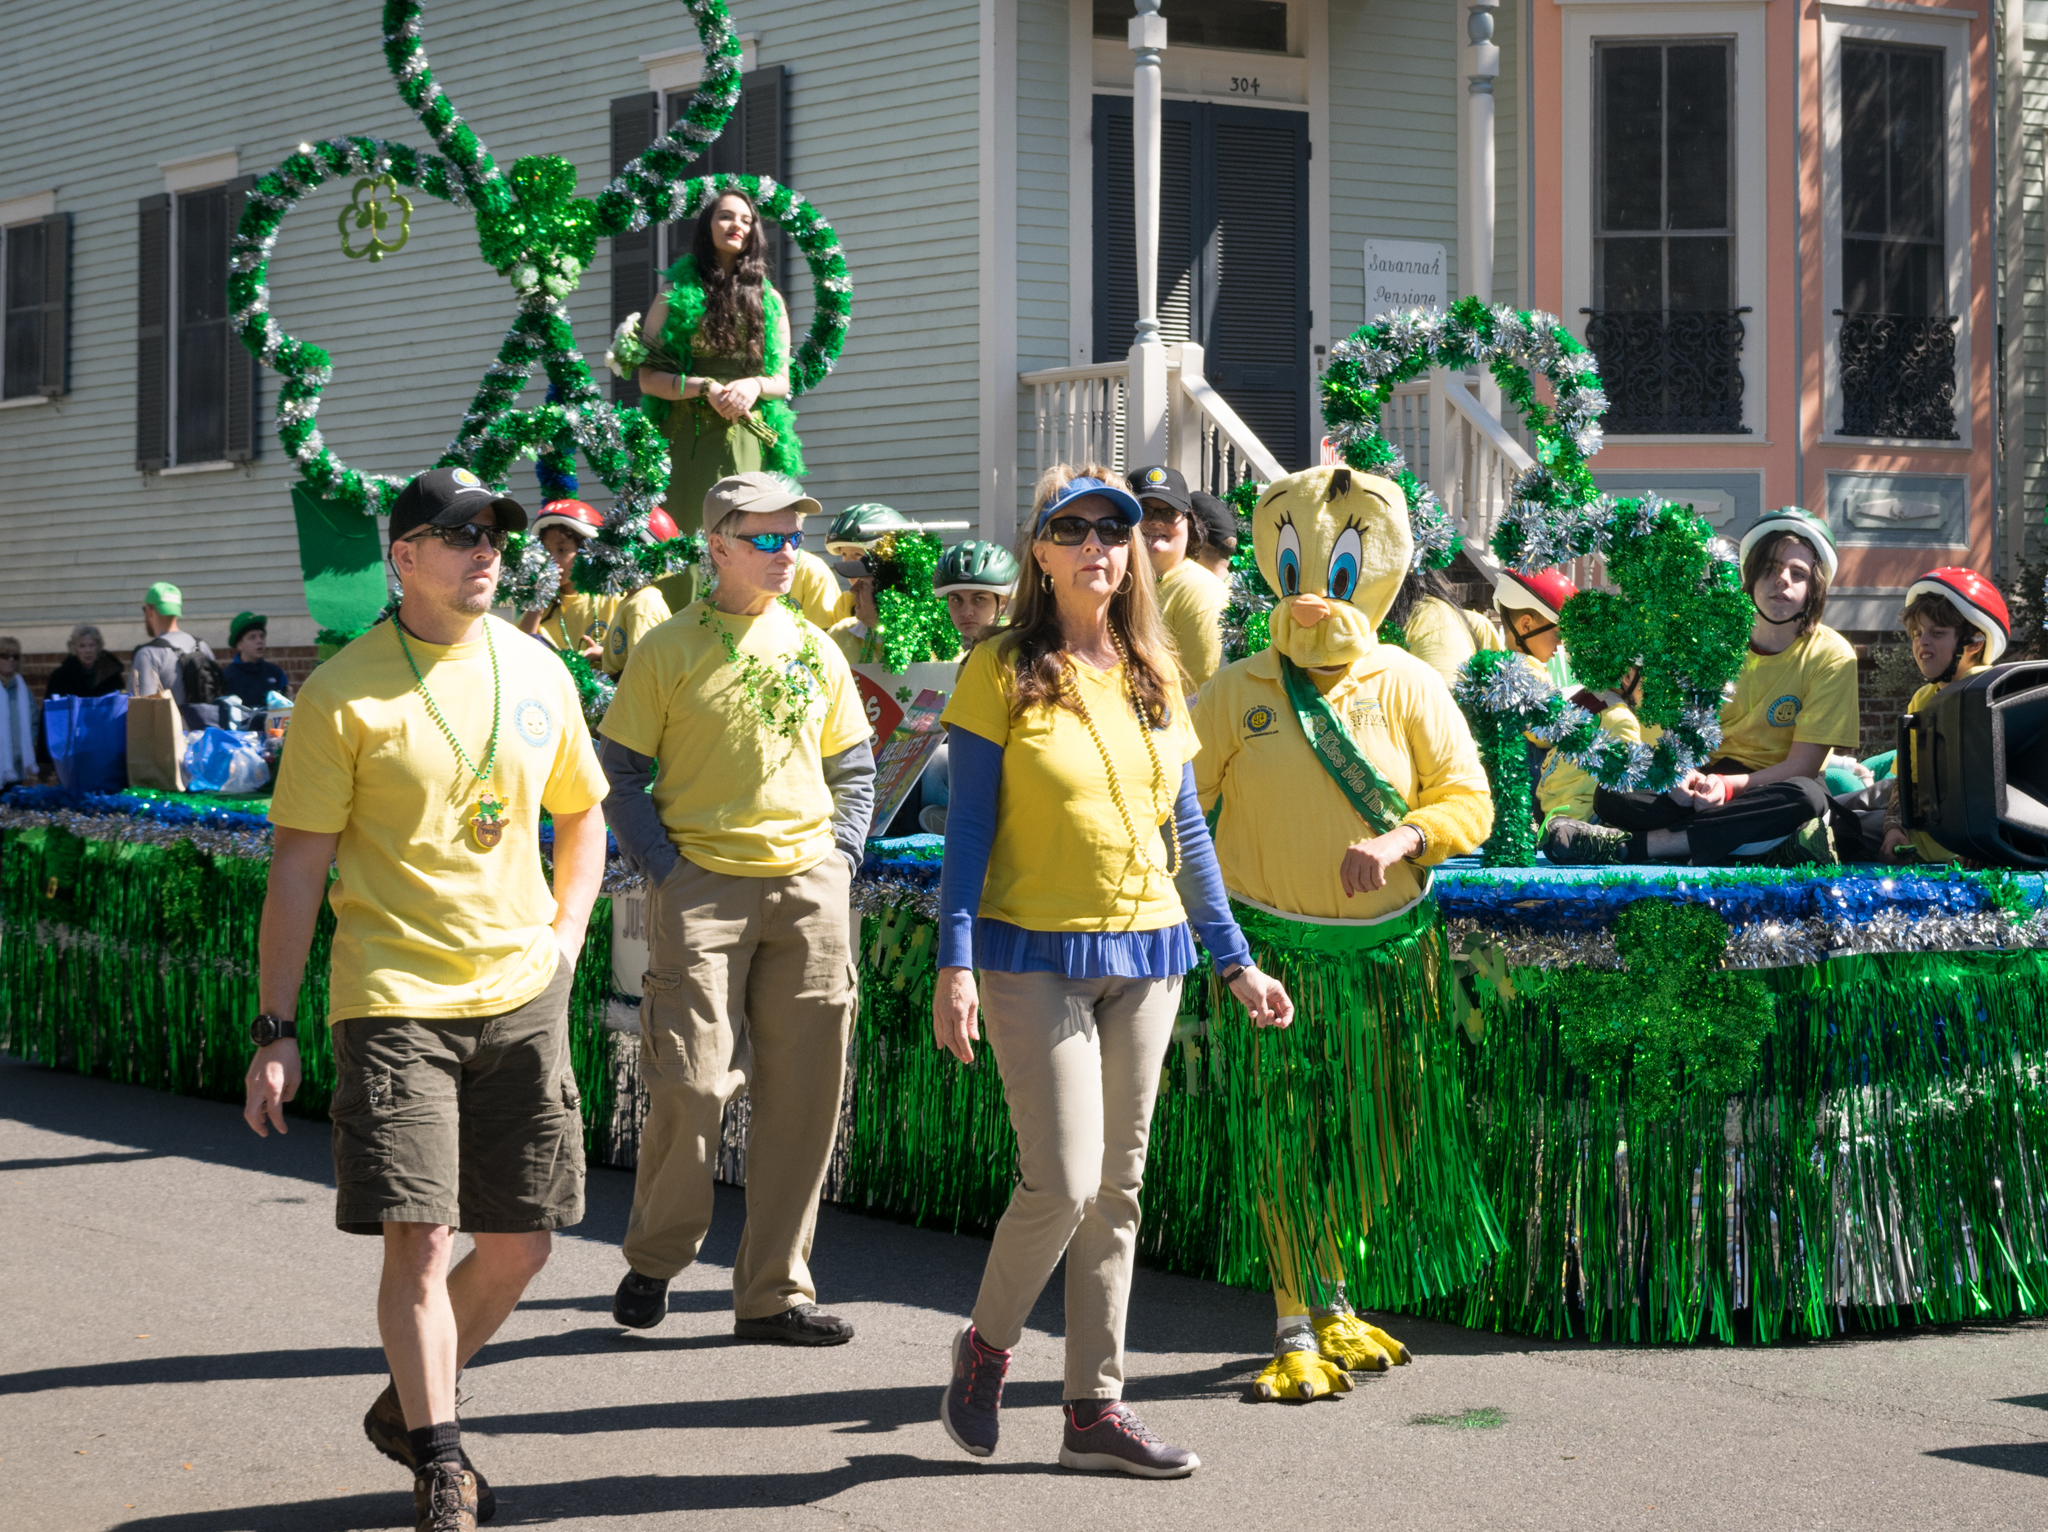 20-St Patricks Day 2017.jpg